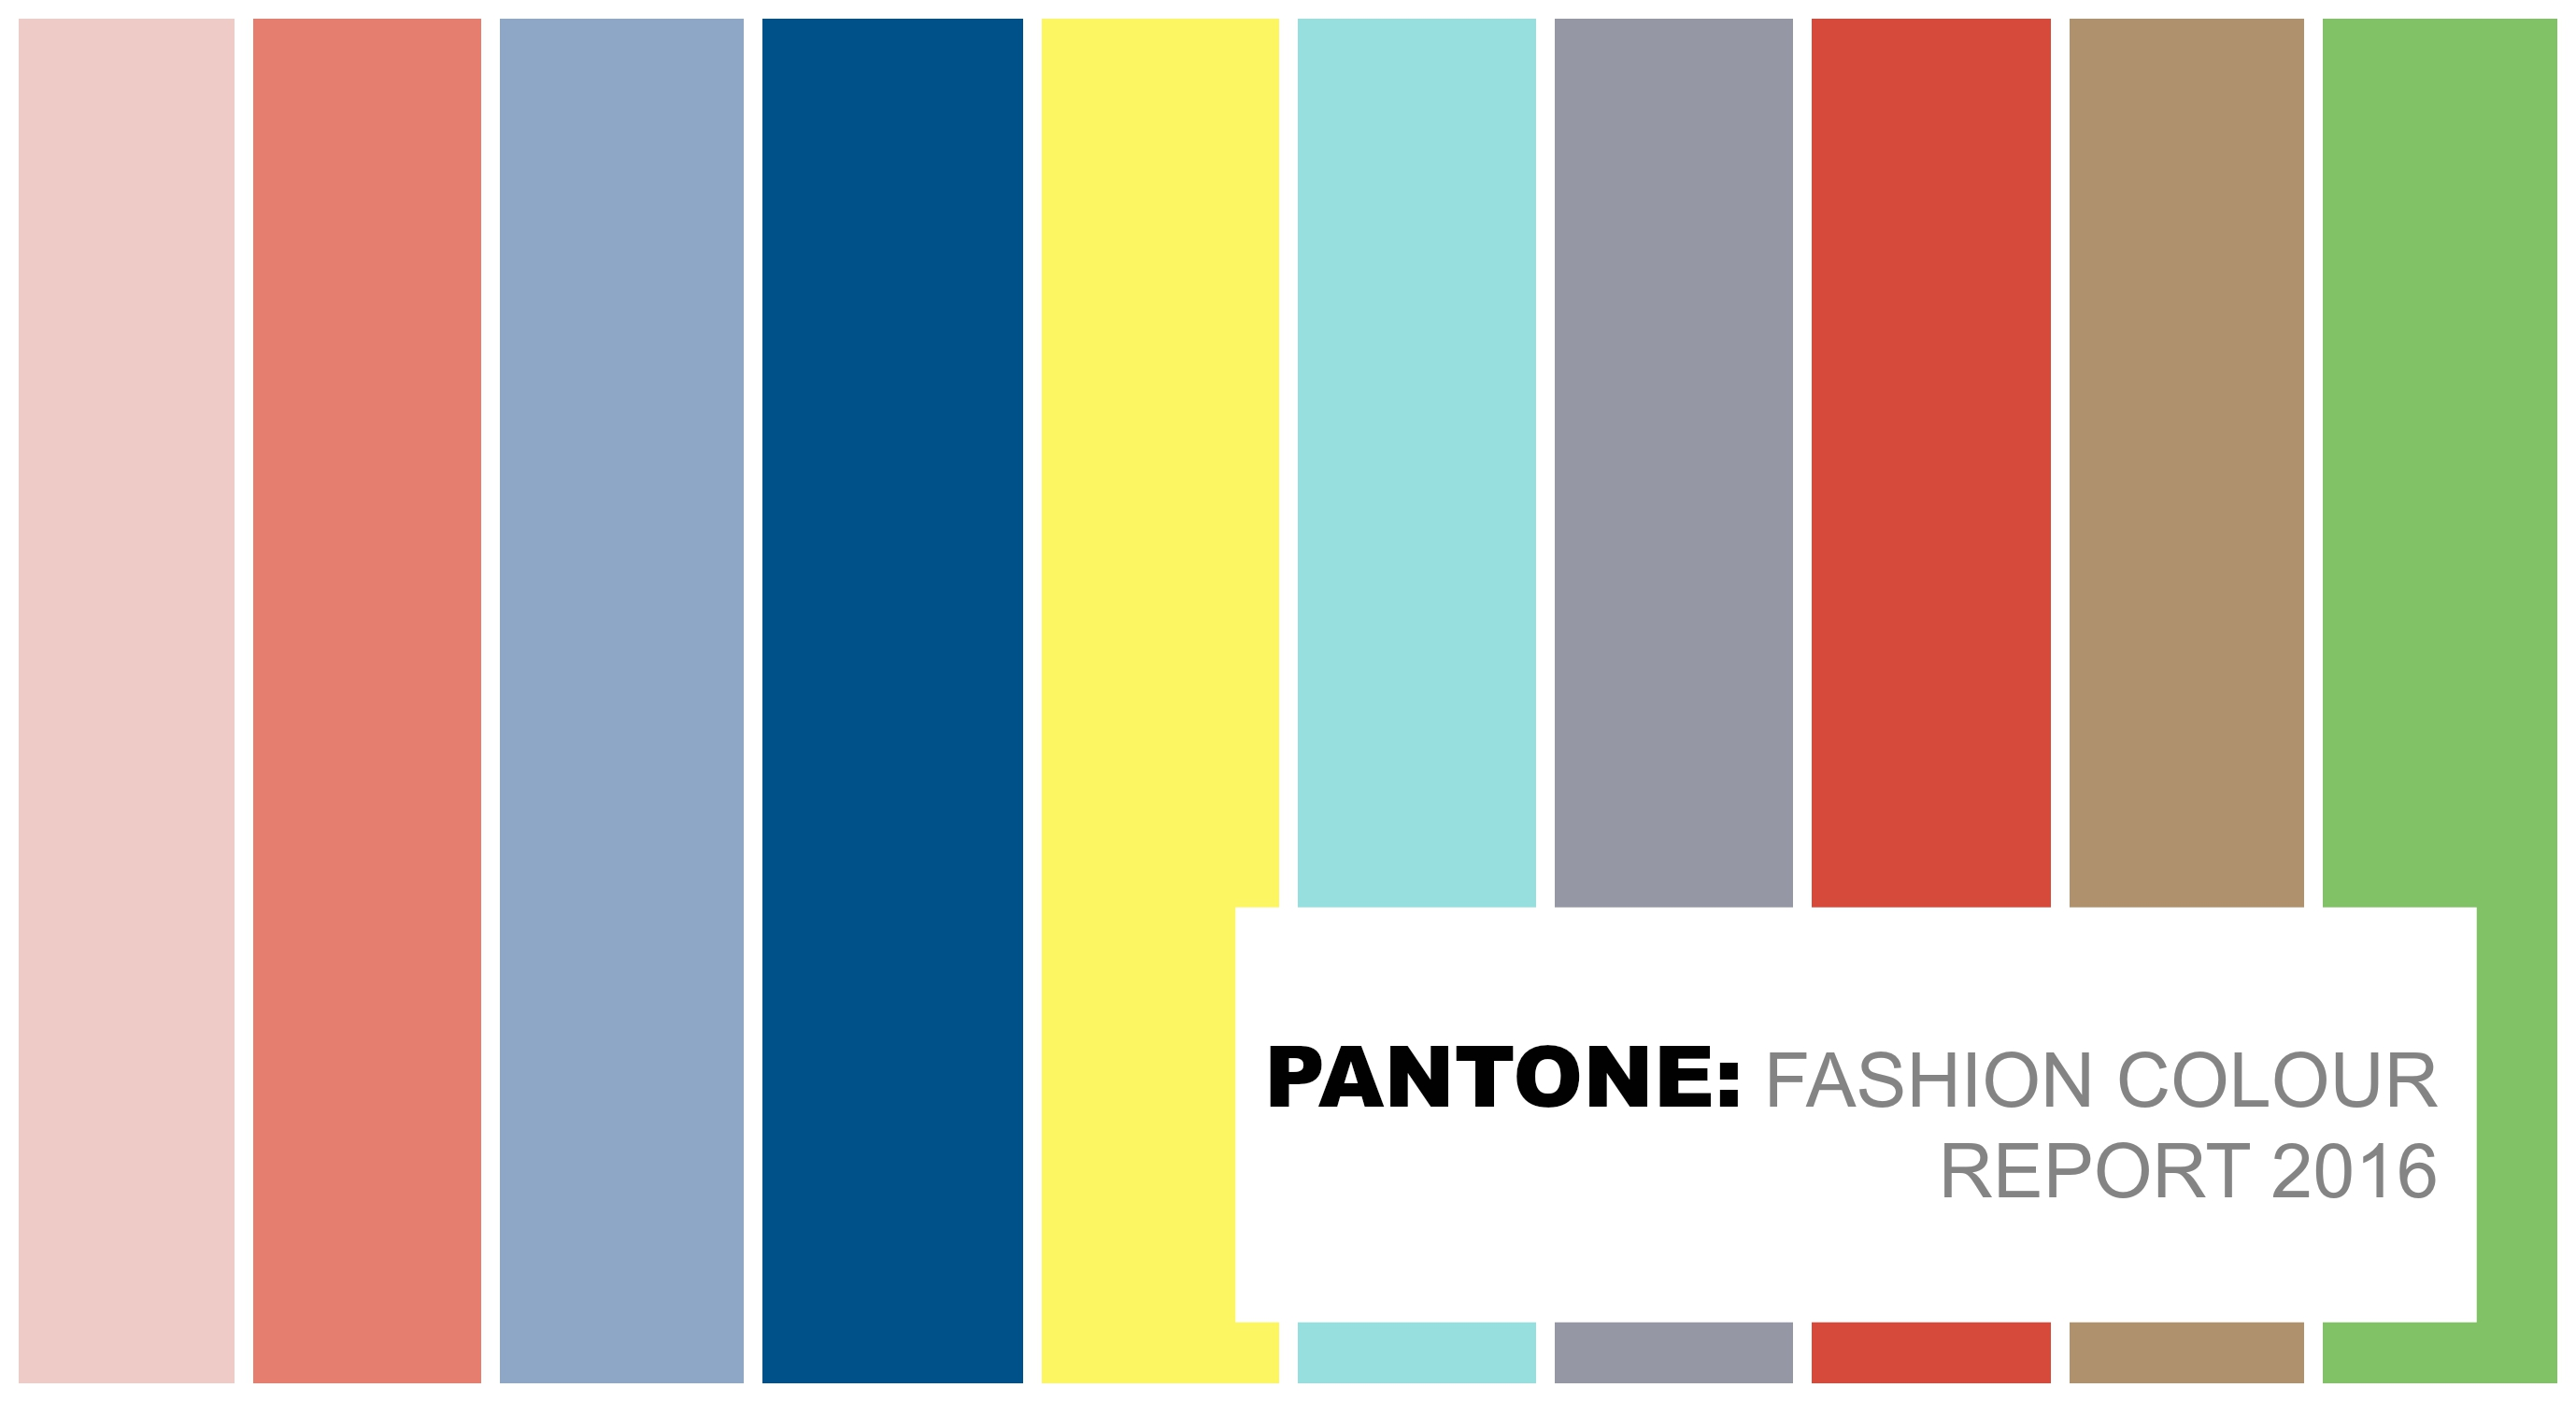 Pantone Color 2016 Pantone Color Of The Year Rose Quartz Serenity My Design Agenda